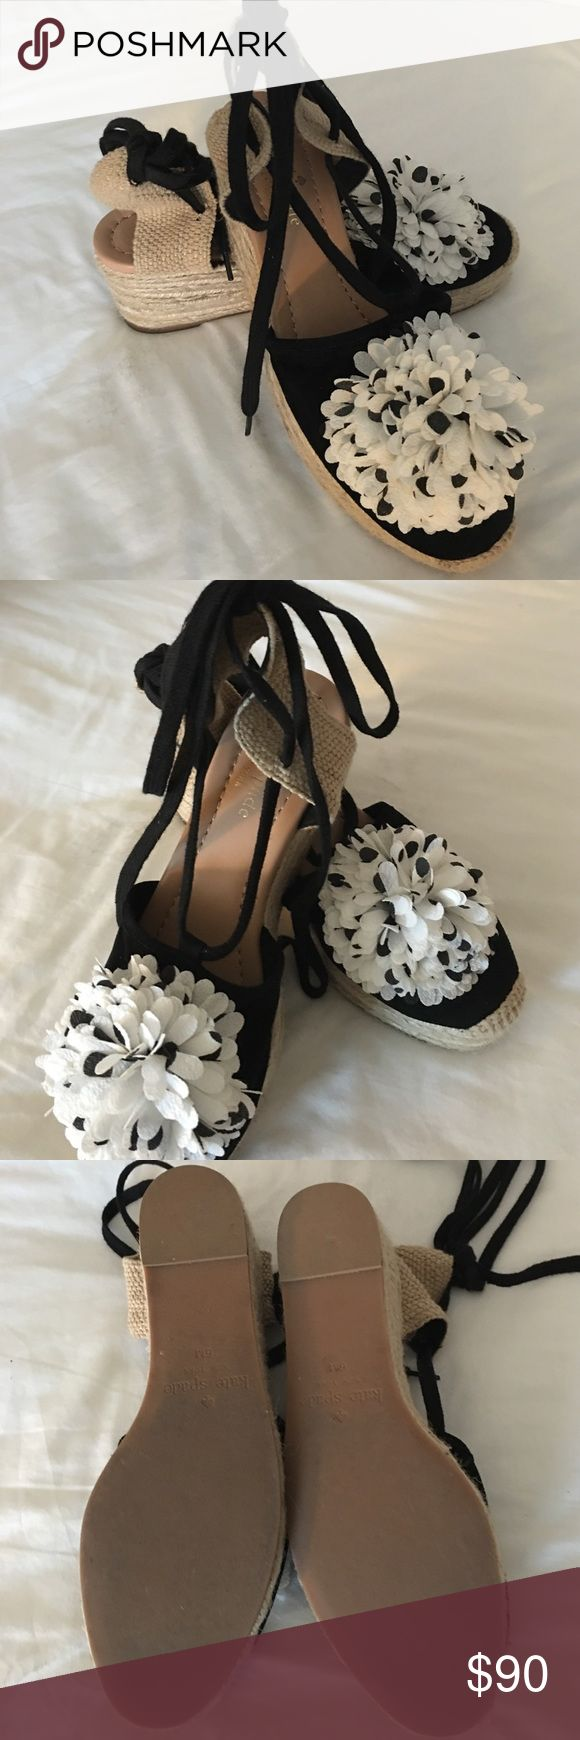 Espadrilles Kate Spade black and white tie ups. Worn twice, they are so cute and comfy! Can be worn with shorts or a dress! kate spade Shoes Espadrilles